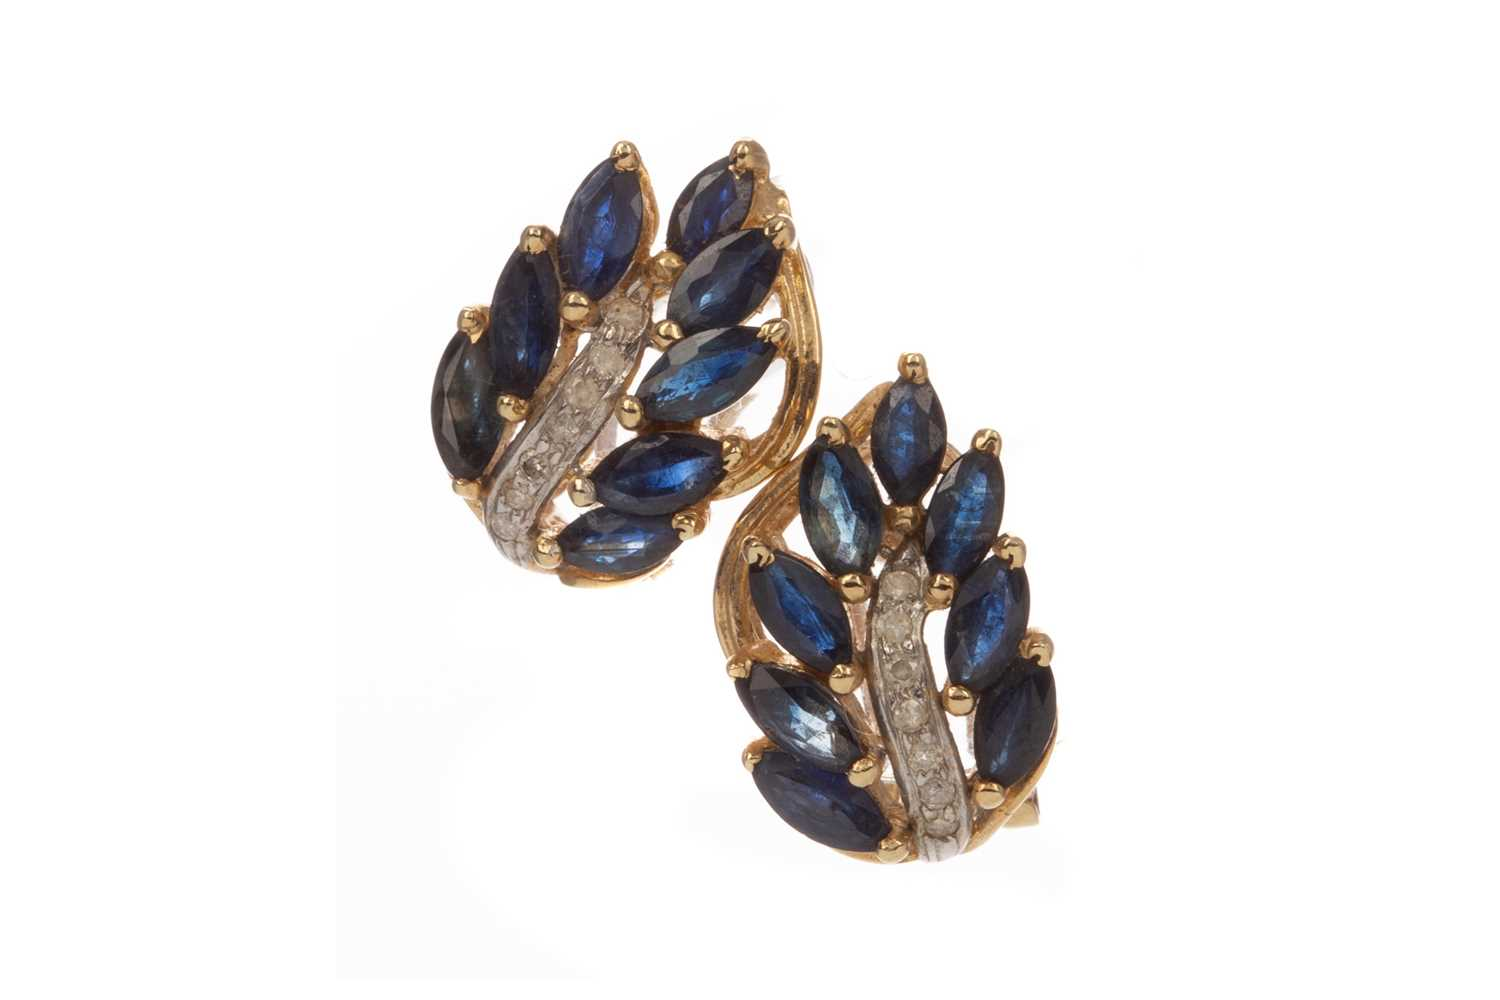 Lot 365 - A PAIR OF SAPPHIRE AND DIAMOND EARRINGS